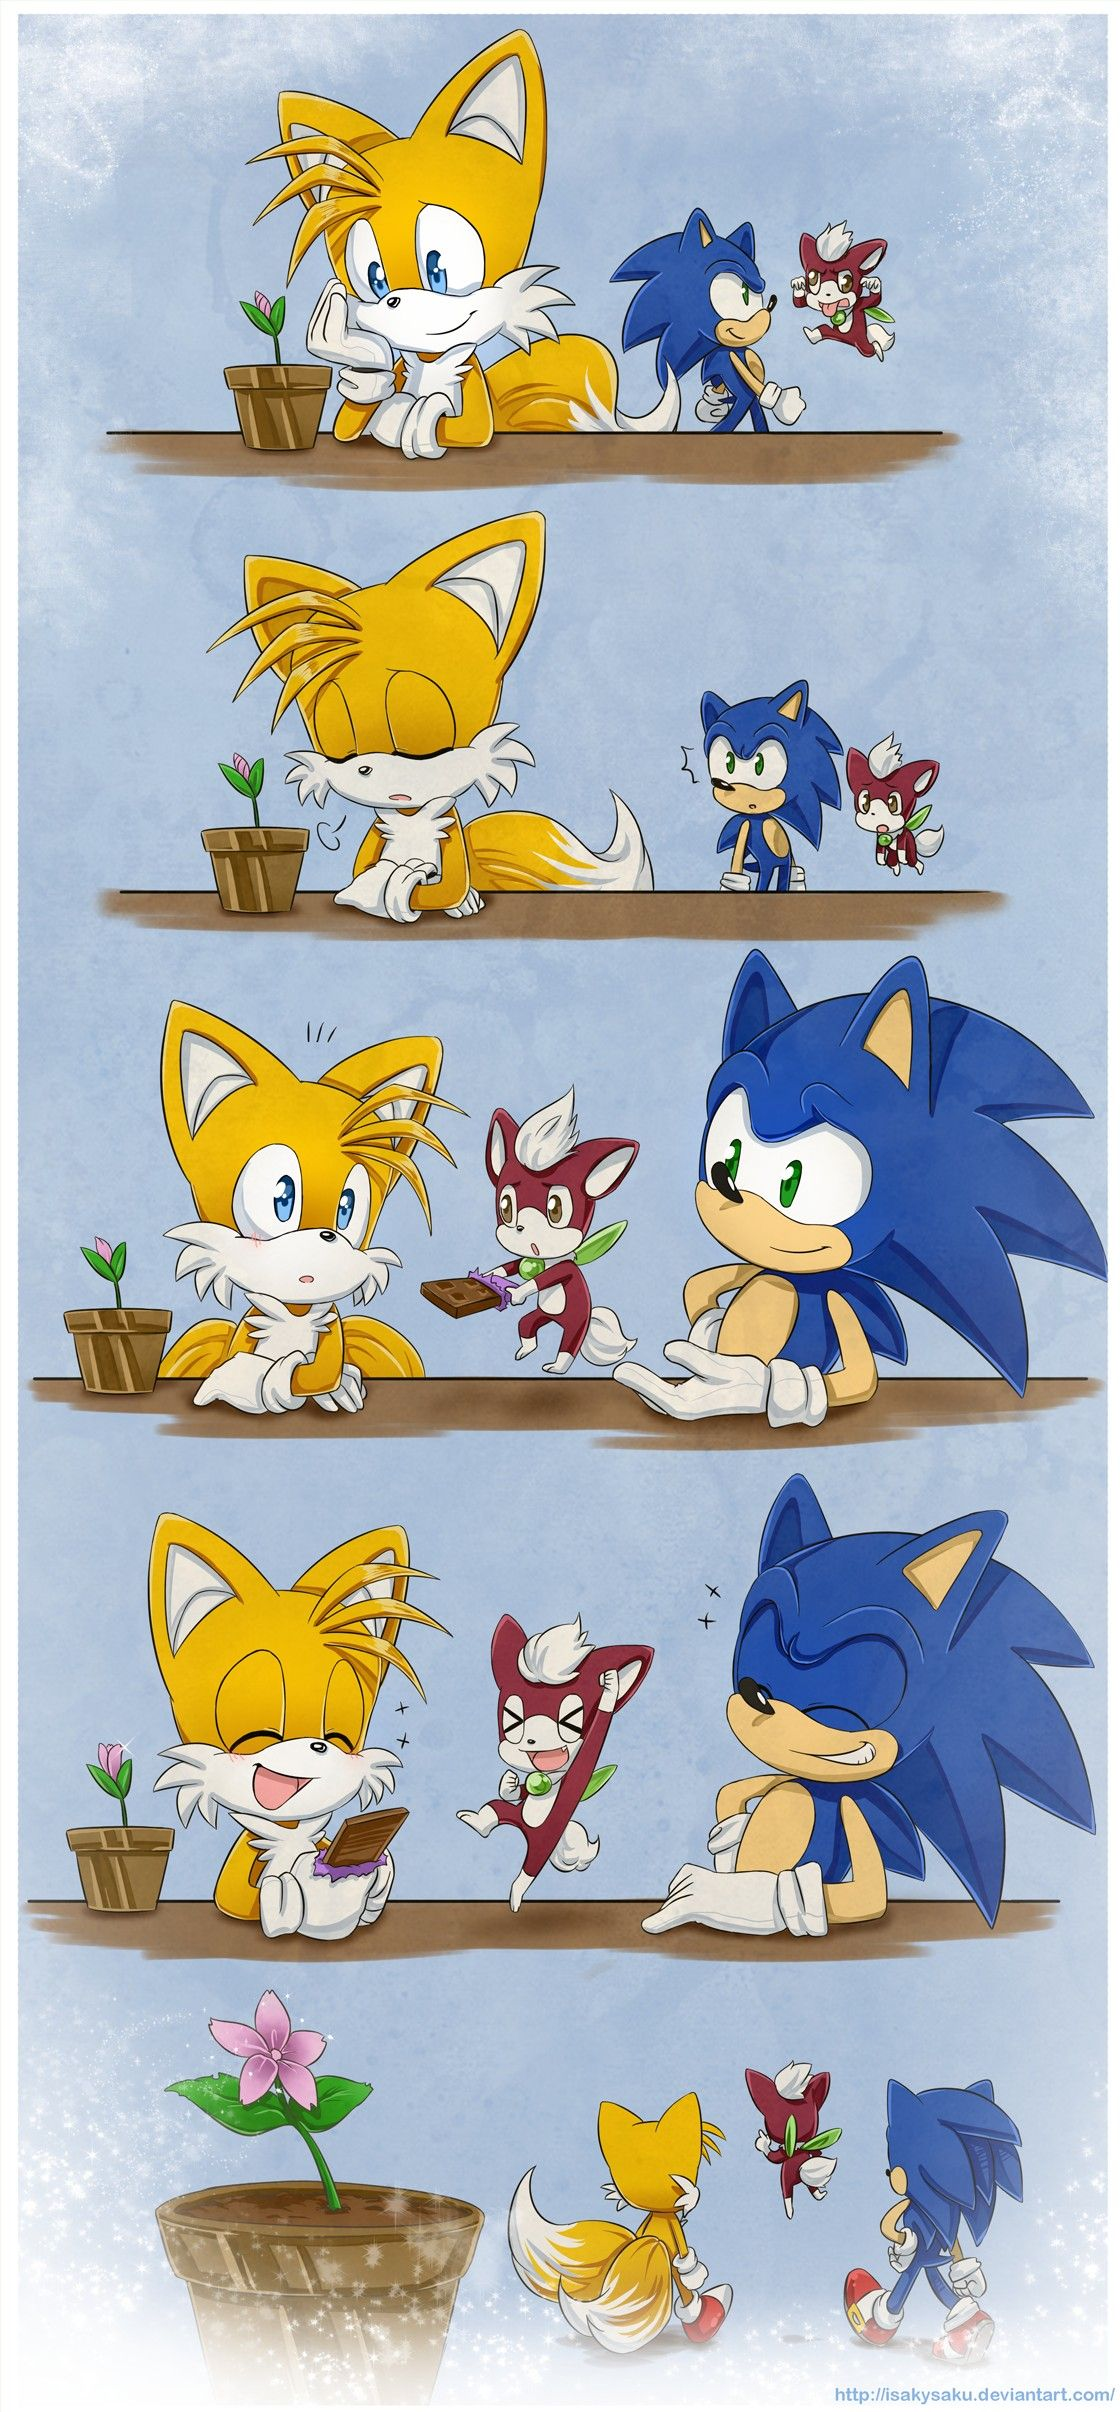 Sonic x screenshots sonic the hedgehog image sonic x episode 64 a - Chip Tails And Sonic I Guess That Flower Is Shy